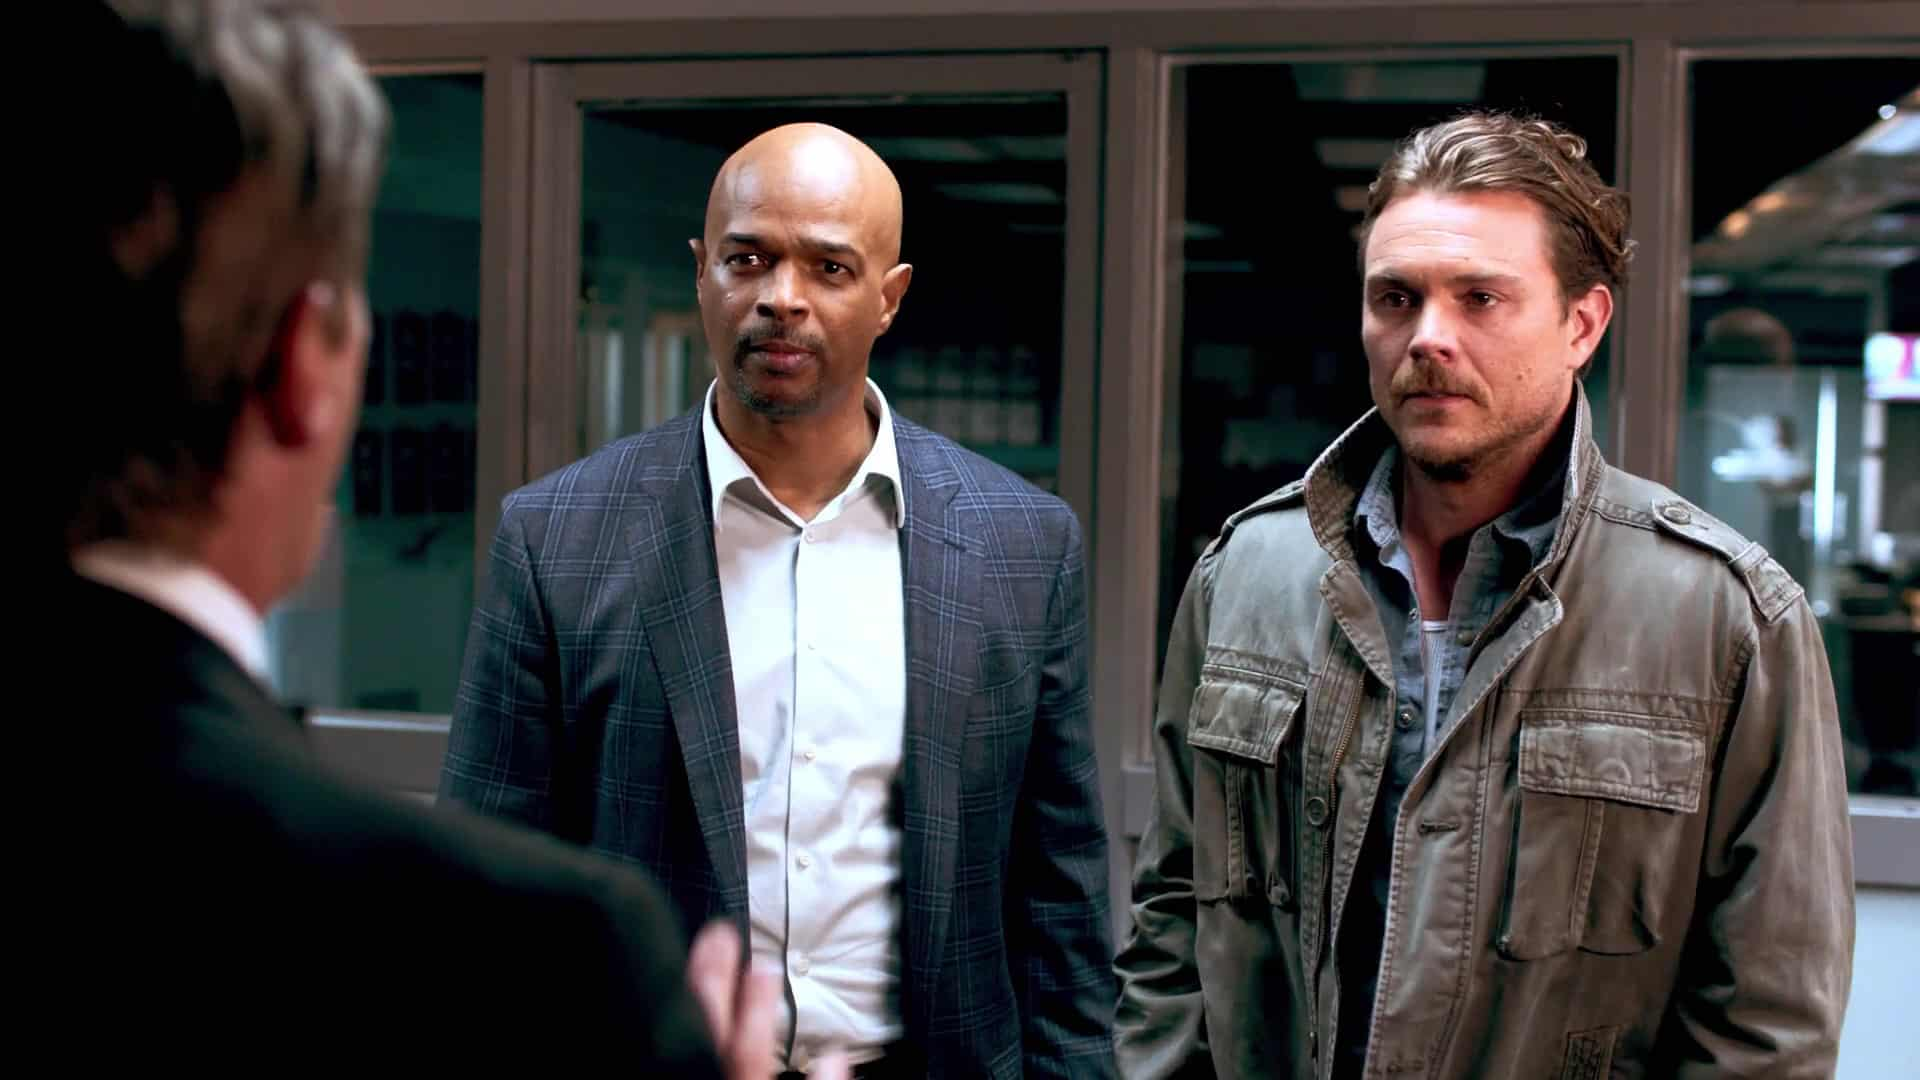 Lethal Weapon TV SHow - The Guy Blog